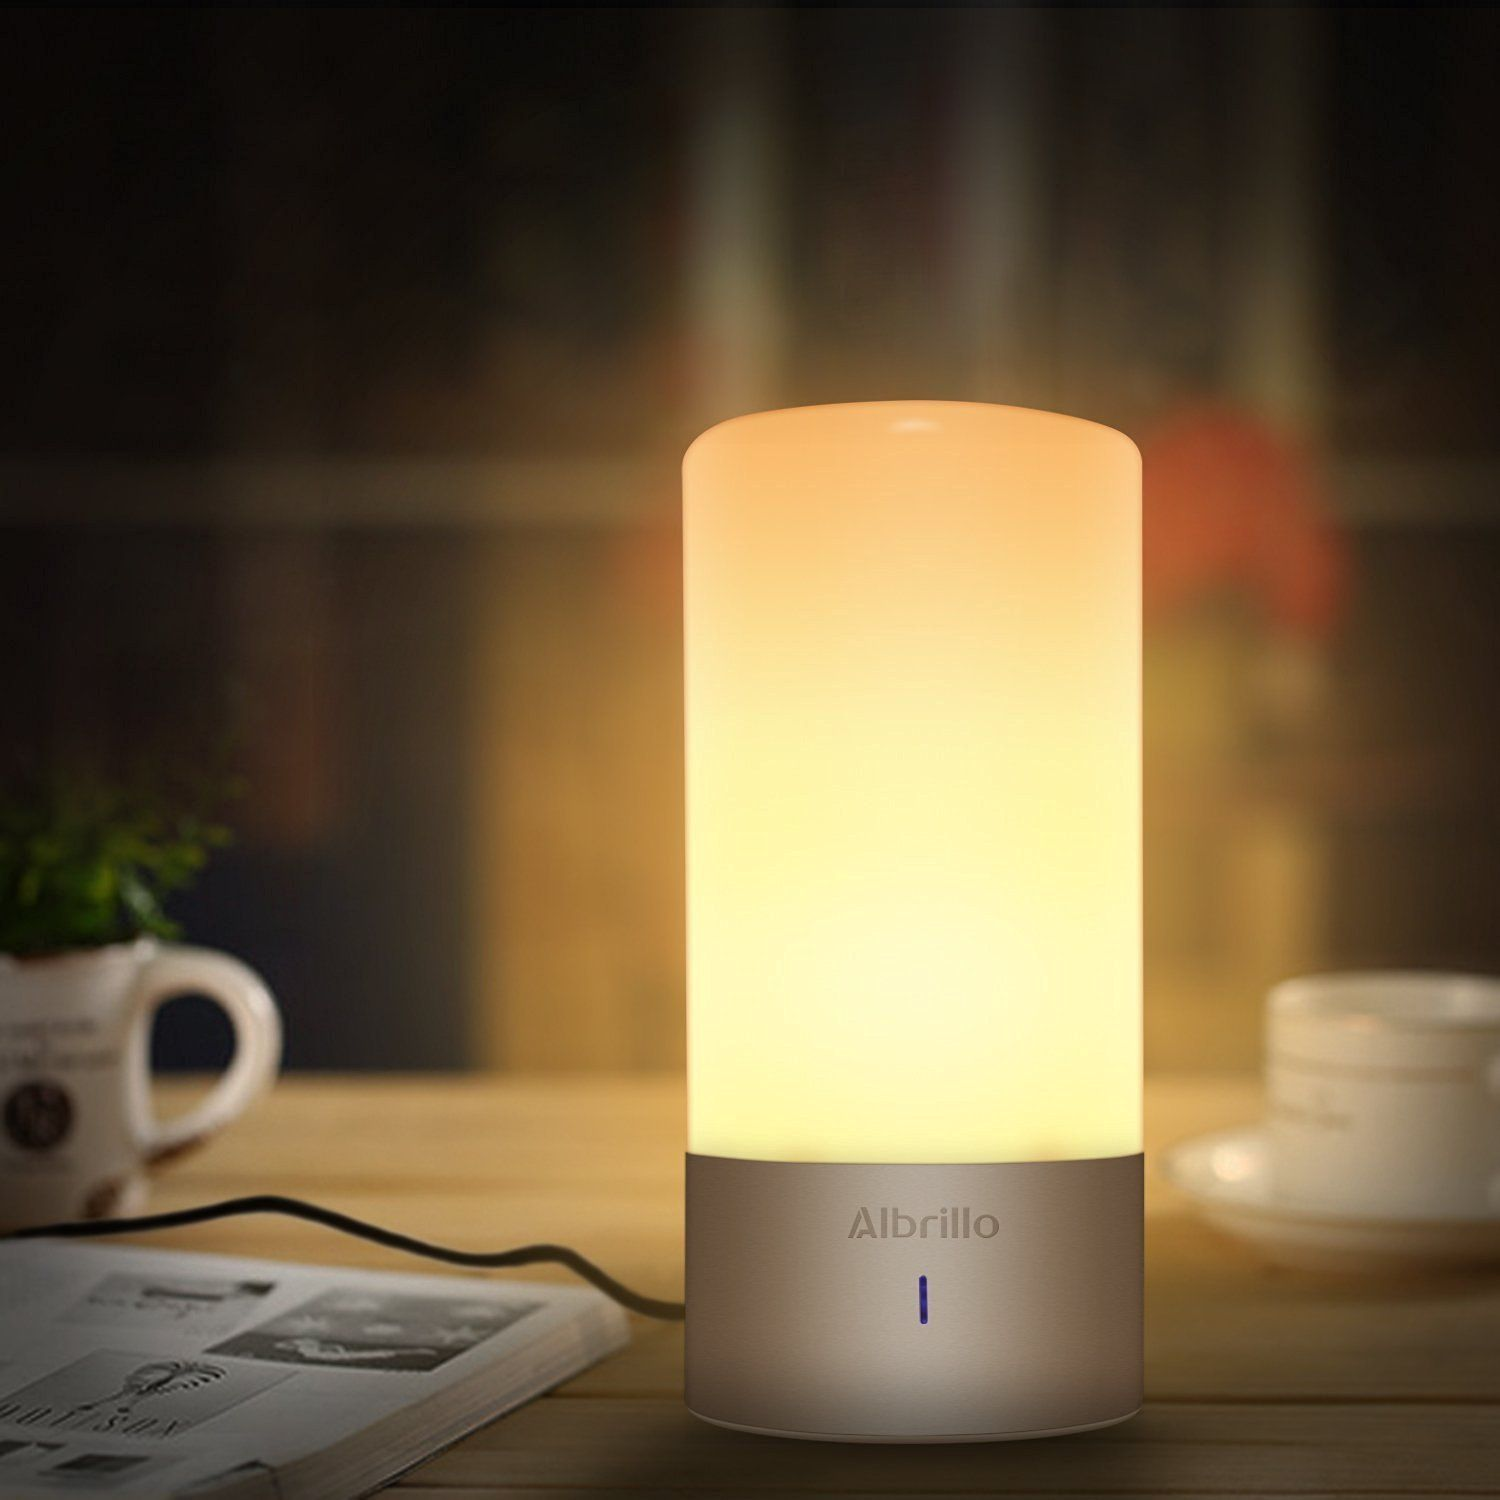 Albrillo Dimmable Bedside Lamp With Touch Sensor And Color